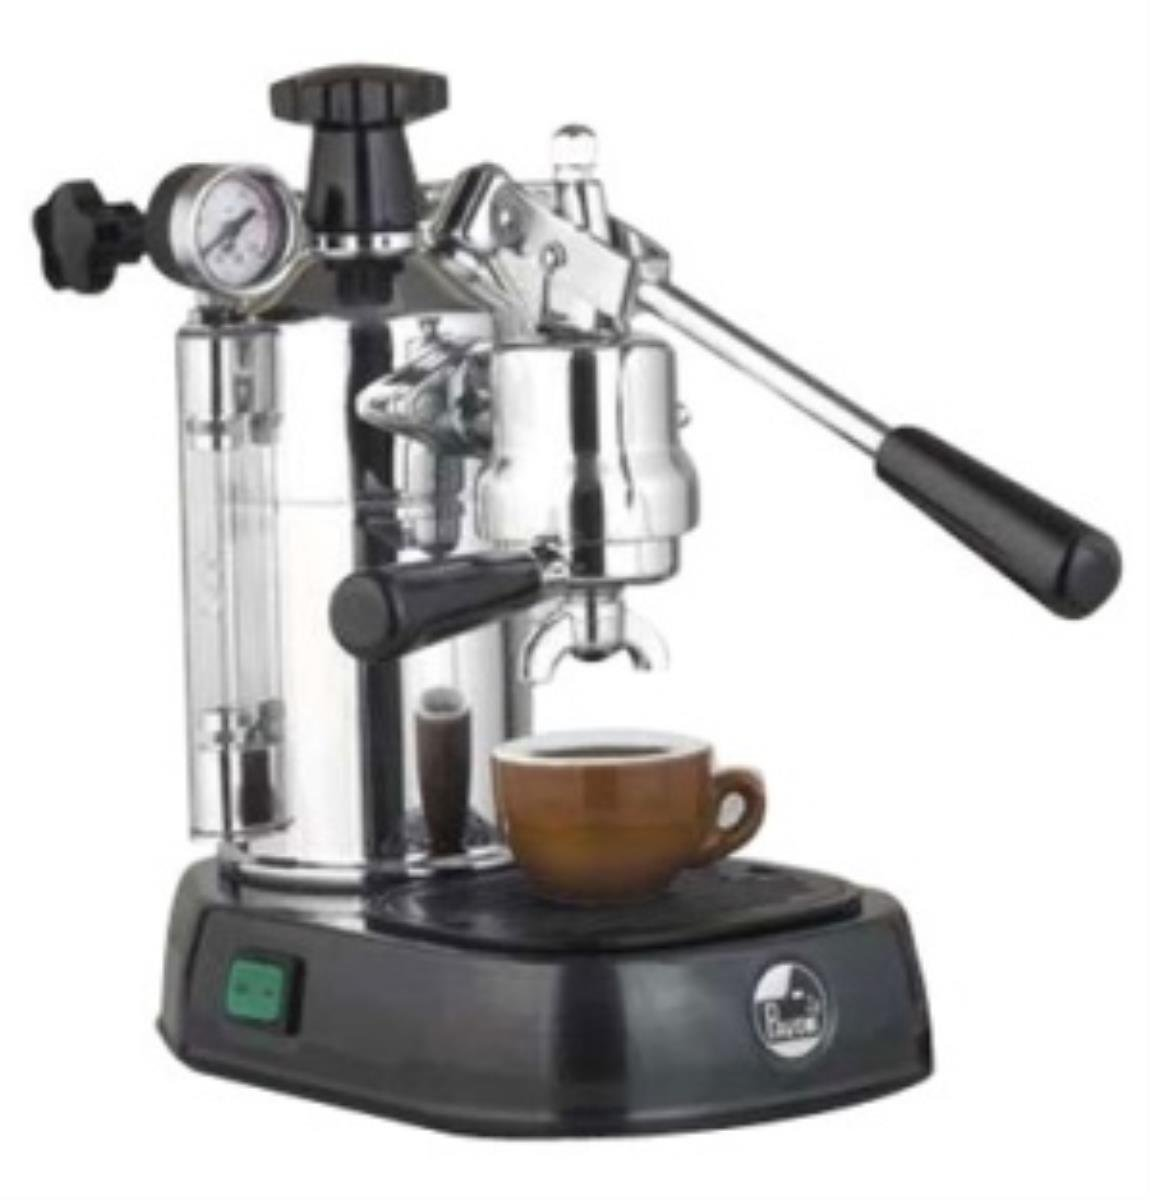 La Pavoni Professional PBB-16 Espresso Machine Black Base by La Pavoni